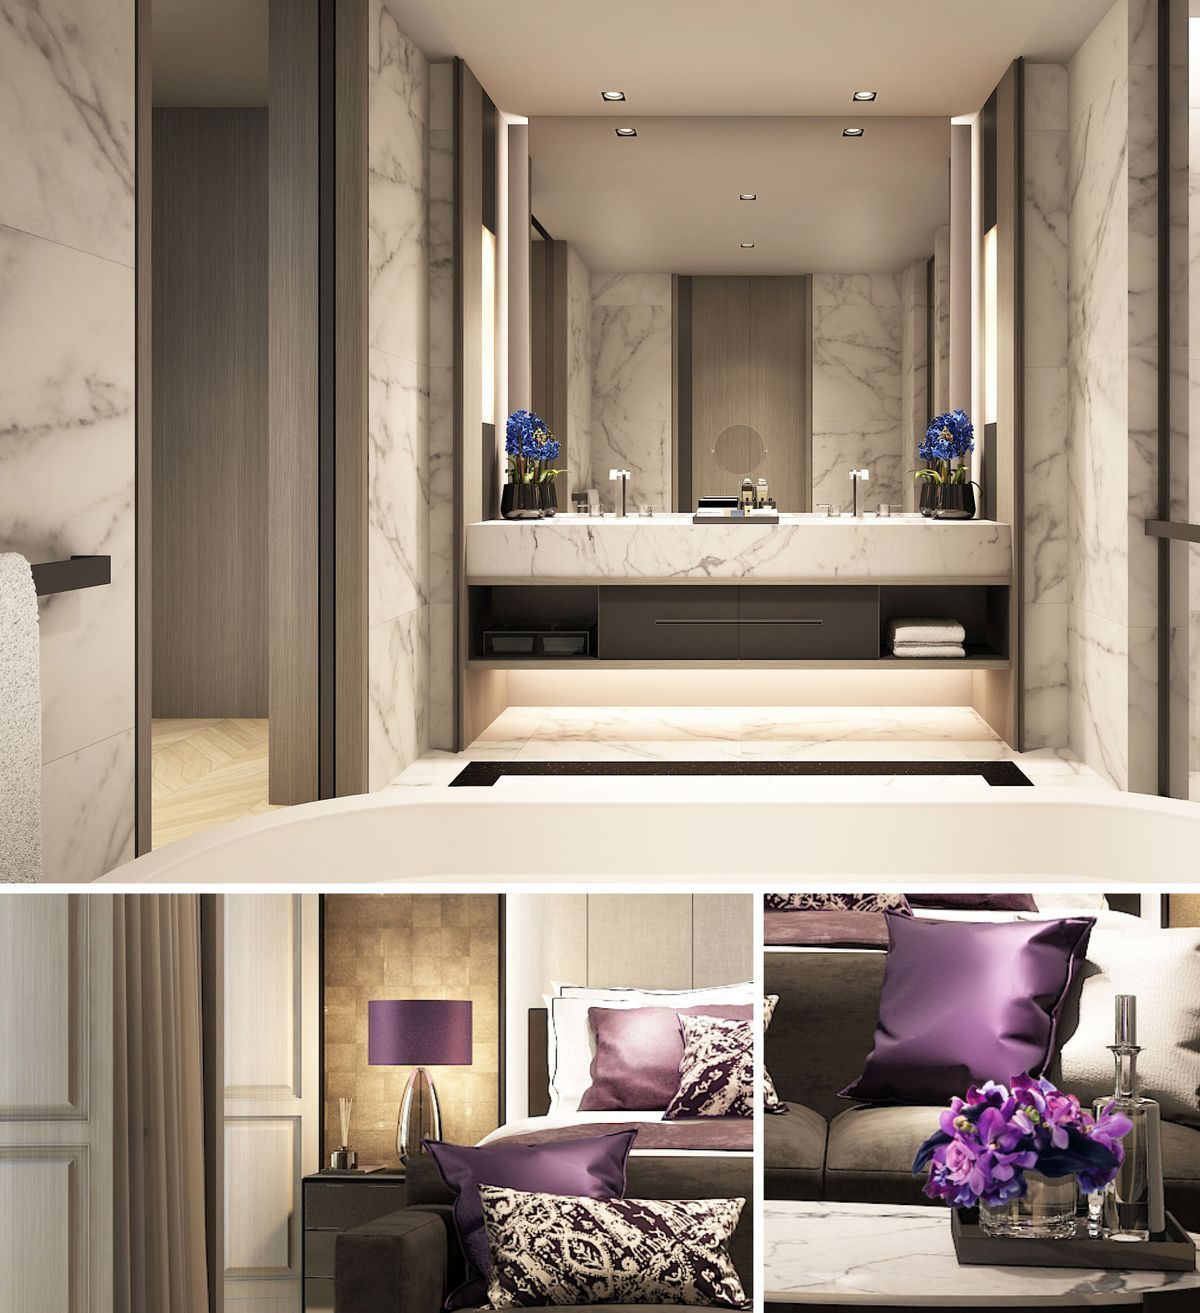 Pin by angela chao on plan - Bank badezimmer ...